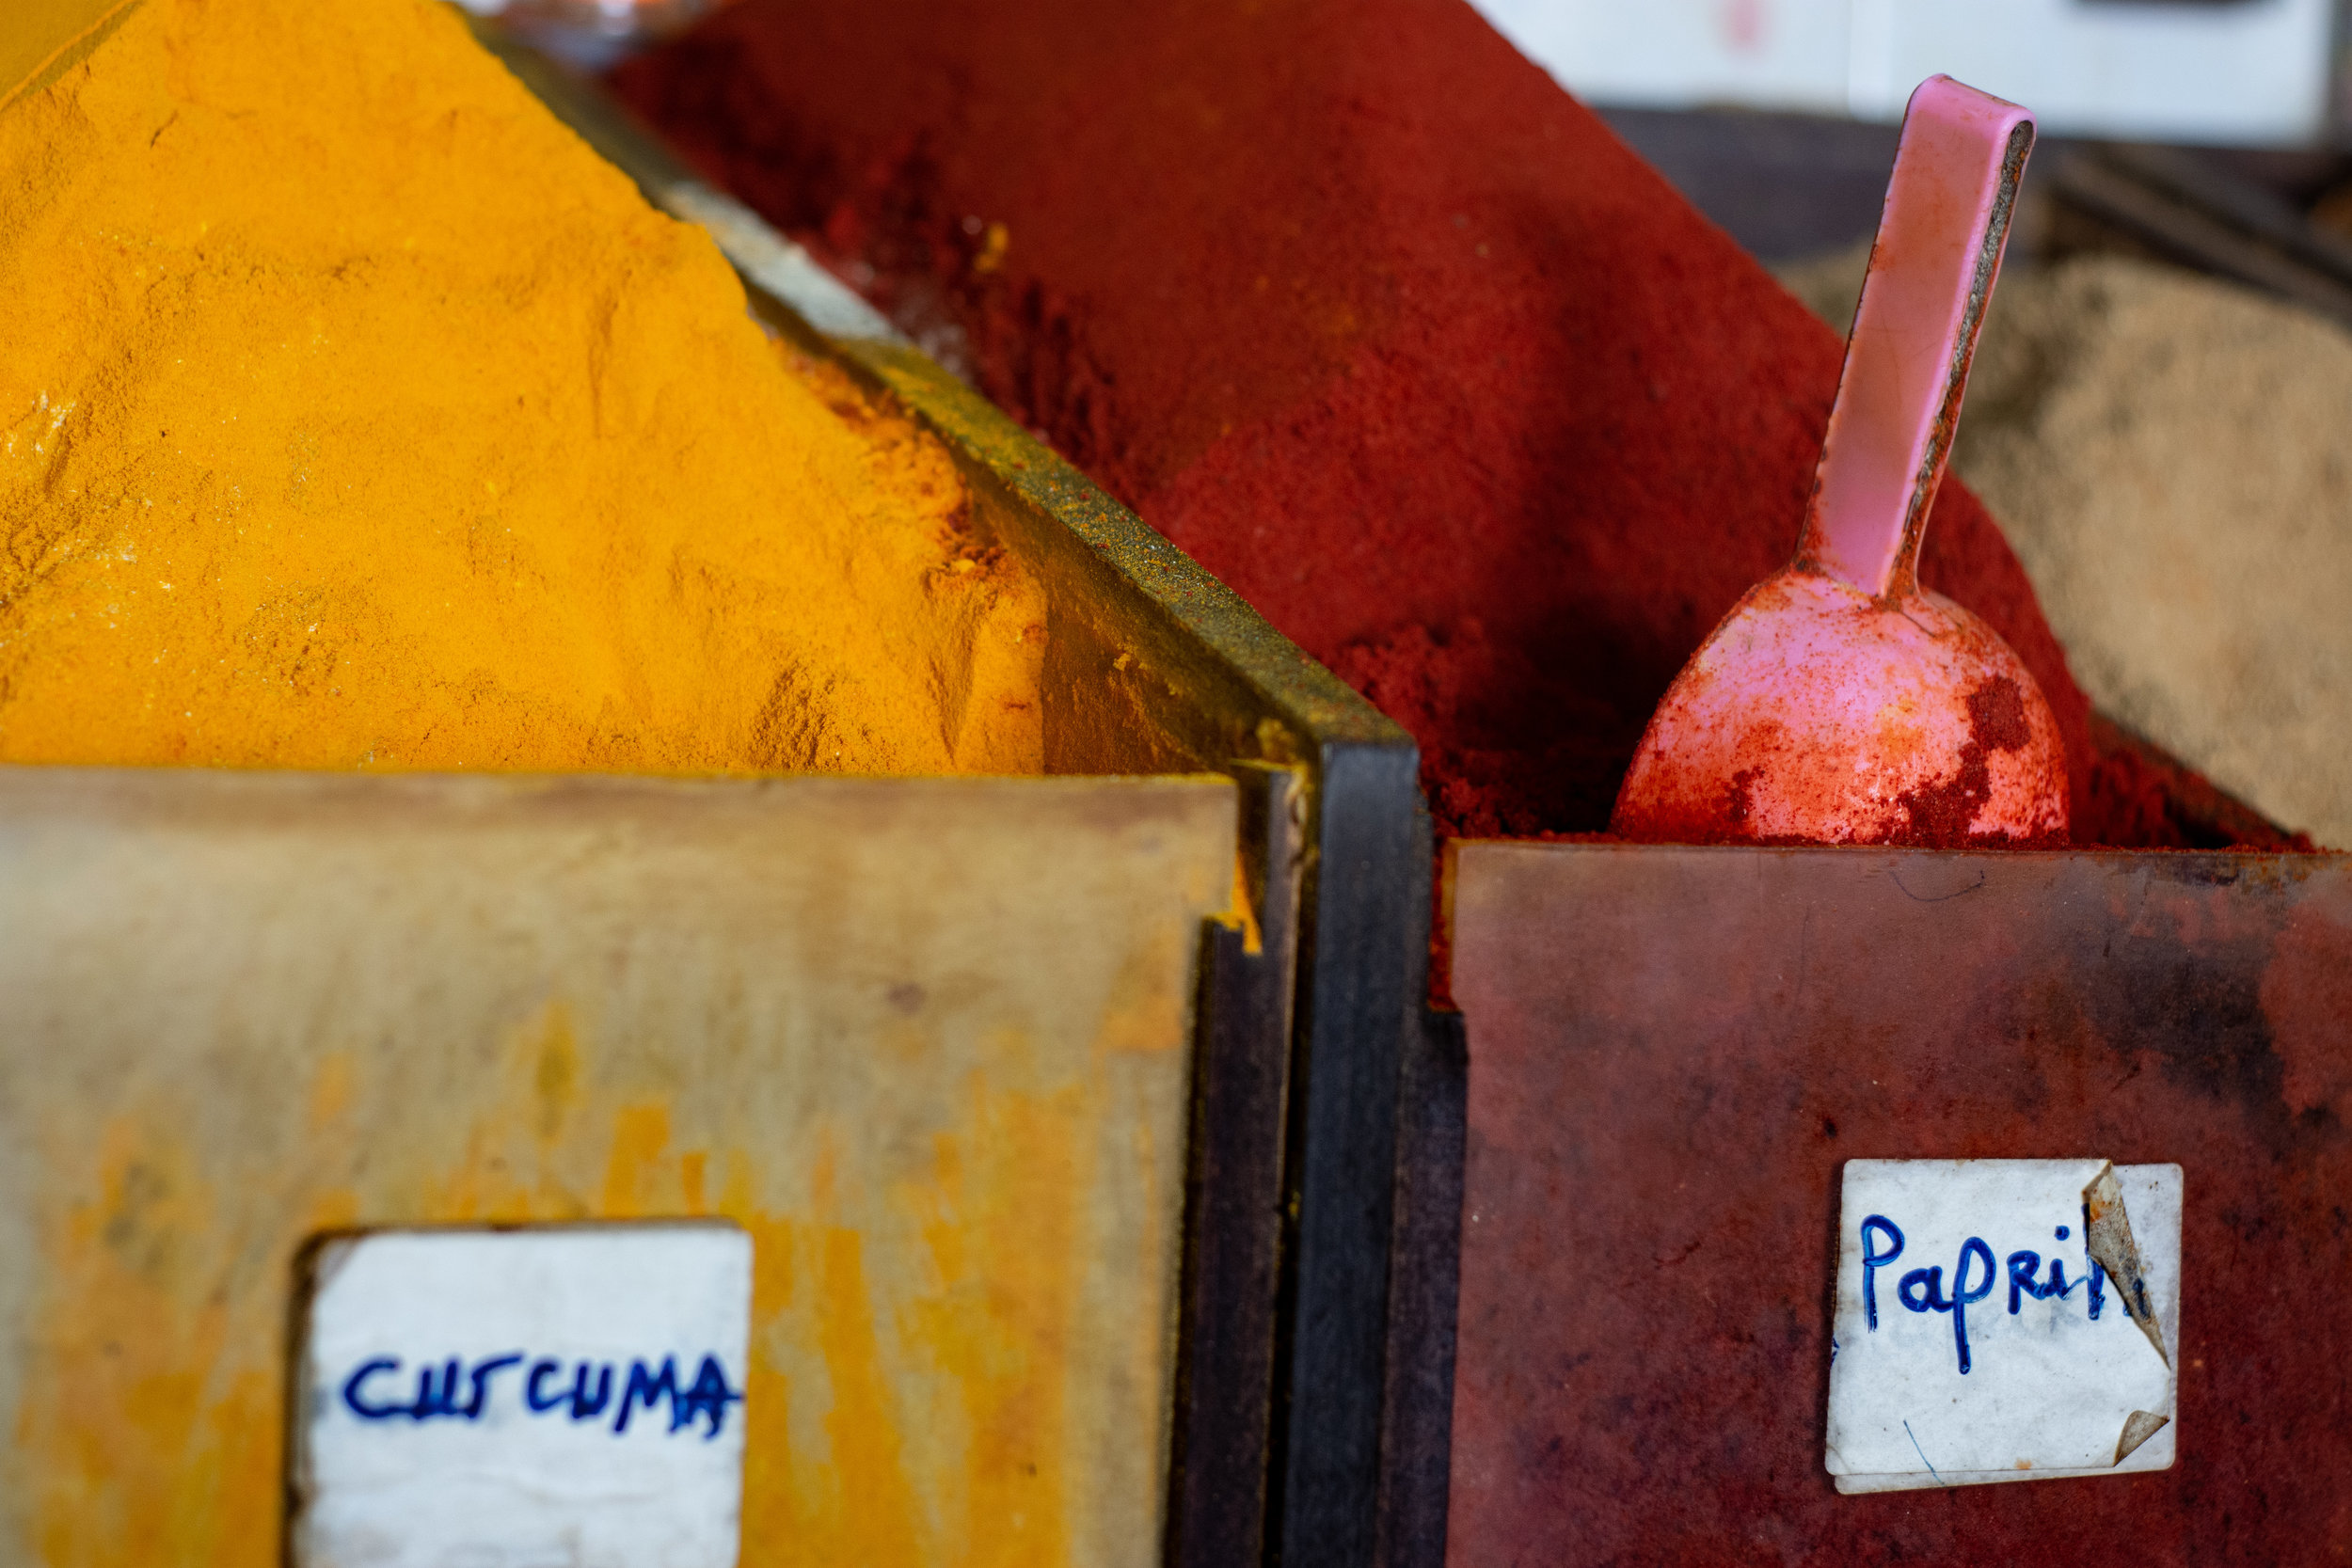 Containers of self-serve ground curcuma (turmeric) and paprika